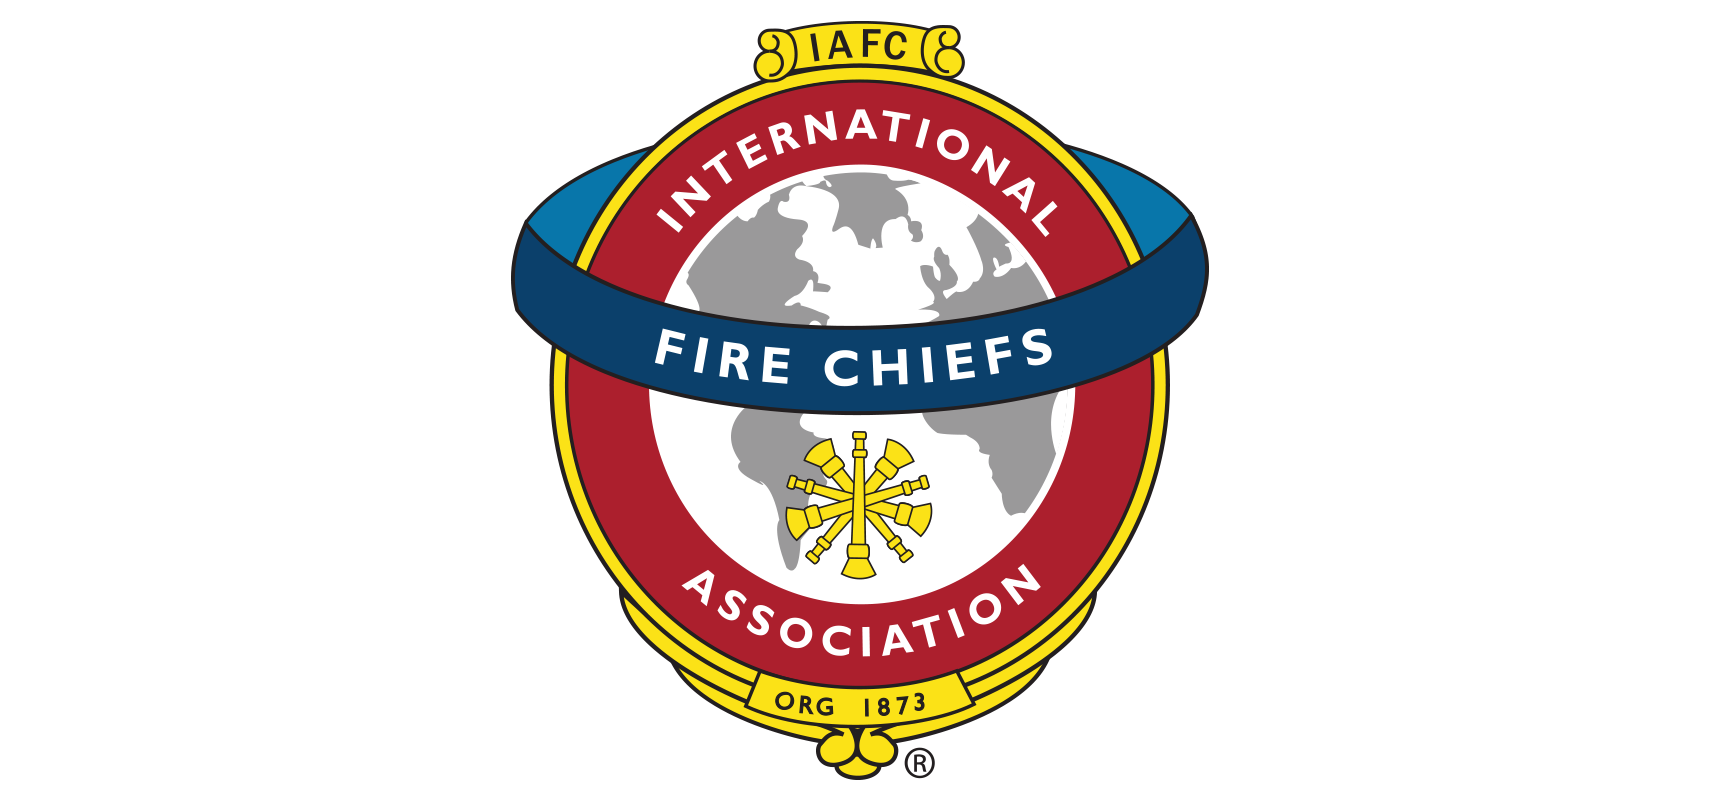 The-IAFC-and-Pierce-Manufacturing-Honor-2017-Volunteer-and-Career-Fire-Chiefs-of-the-Year_Header.png